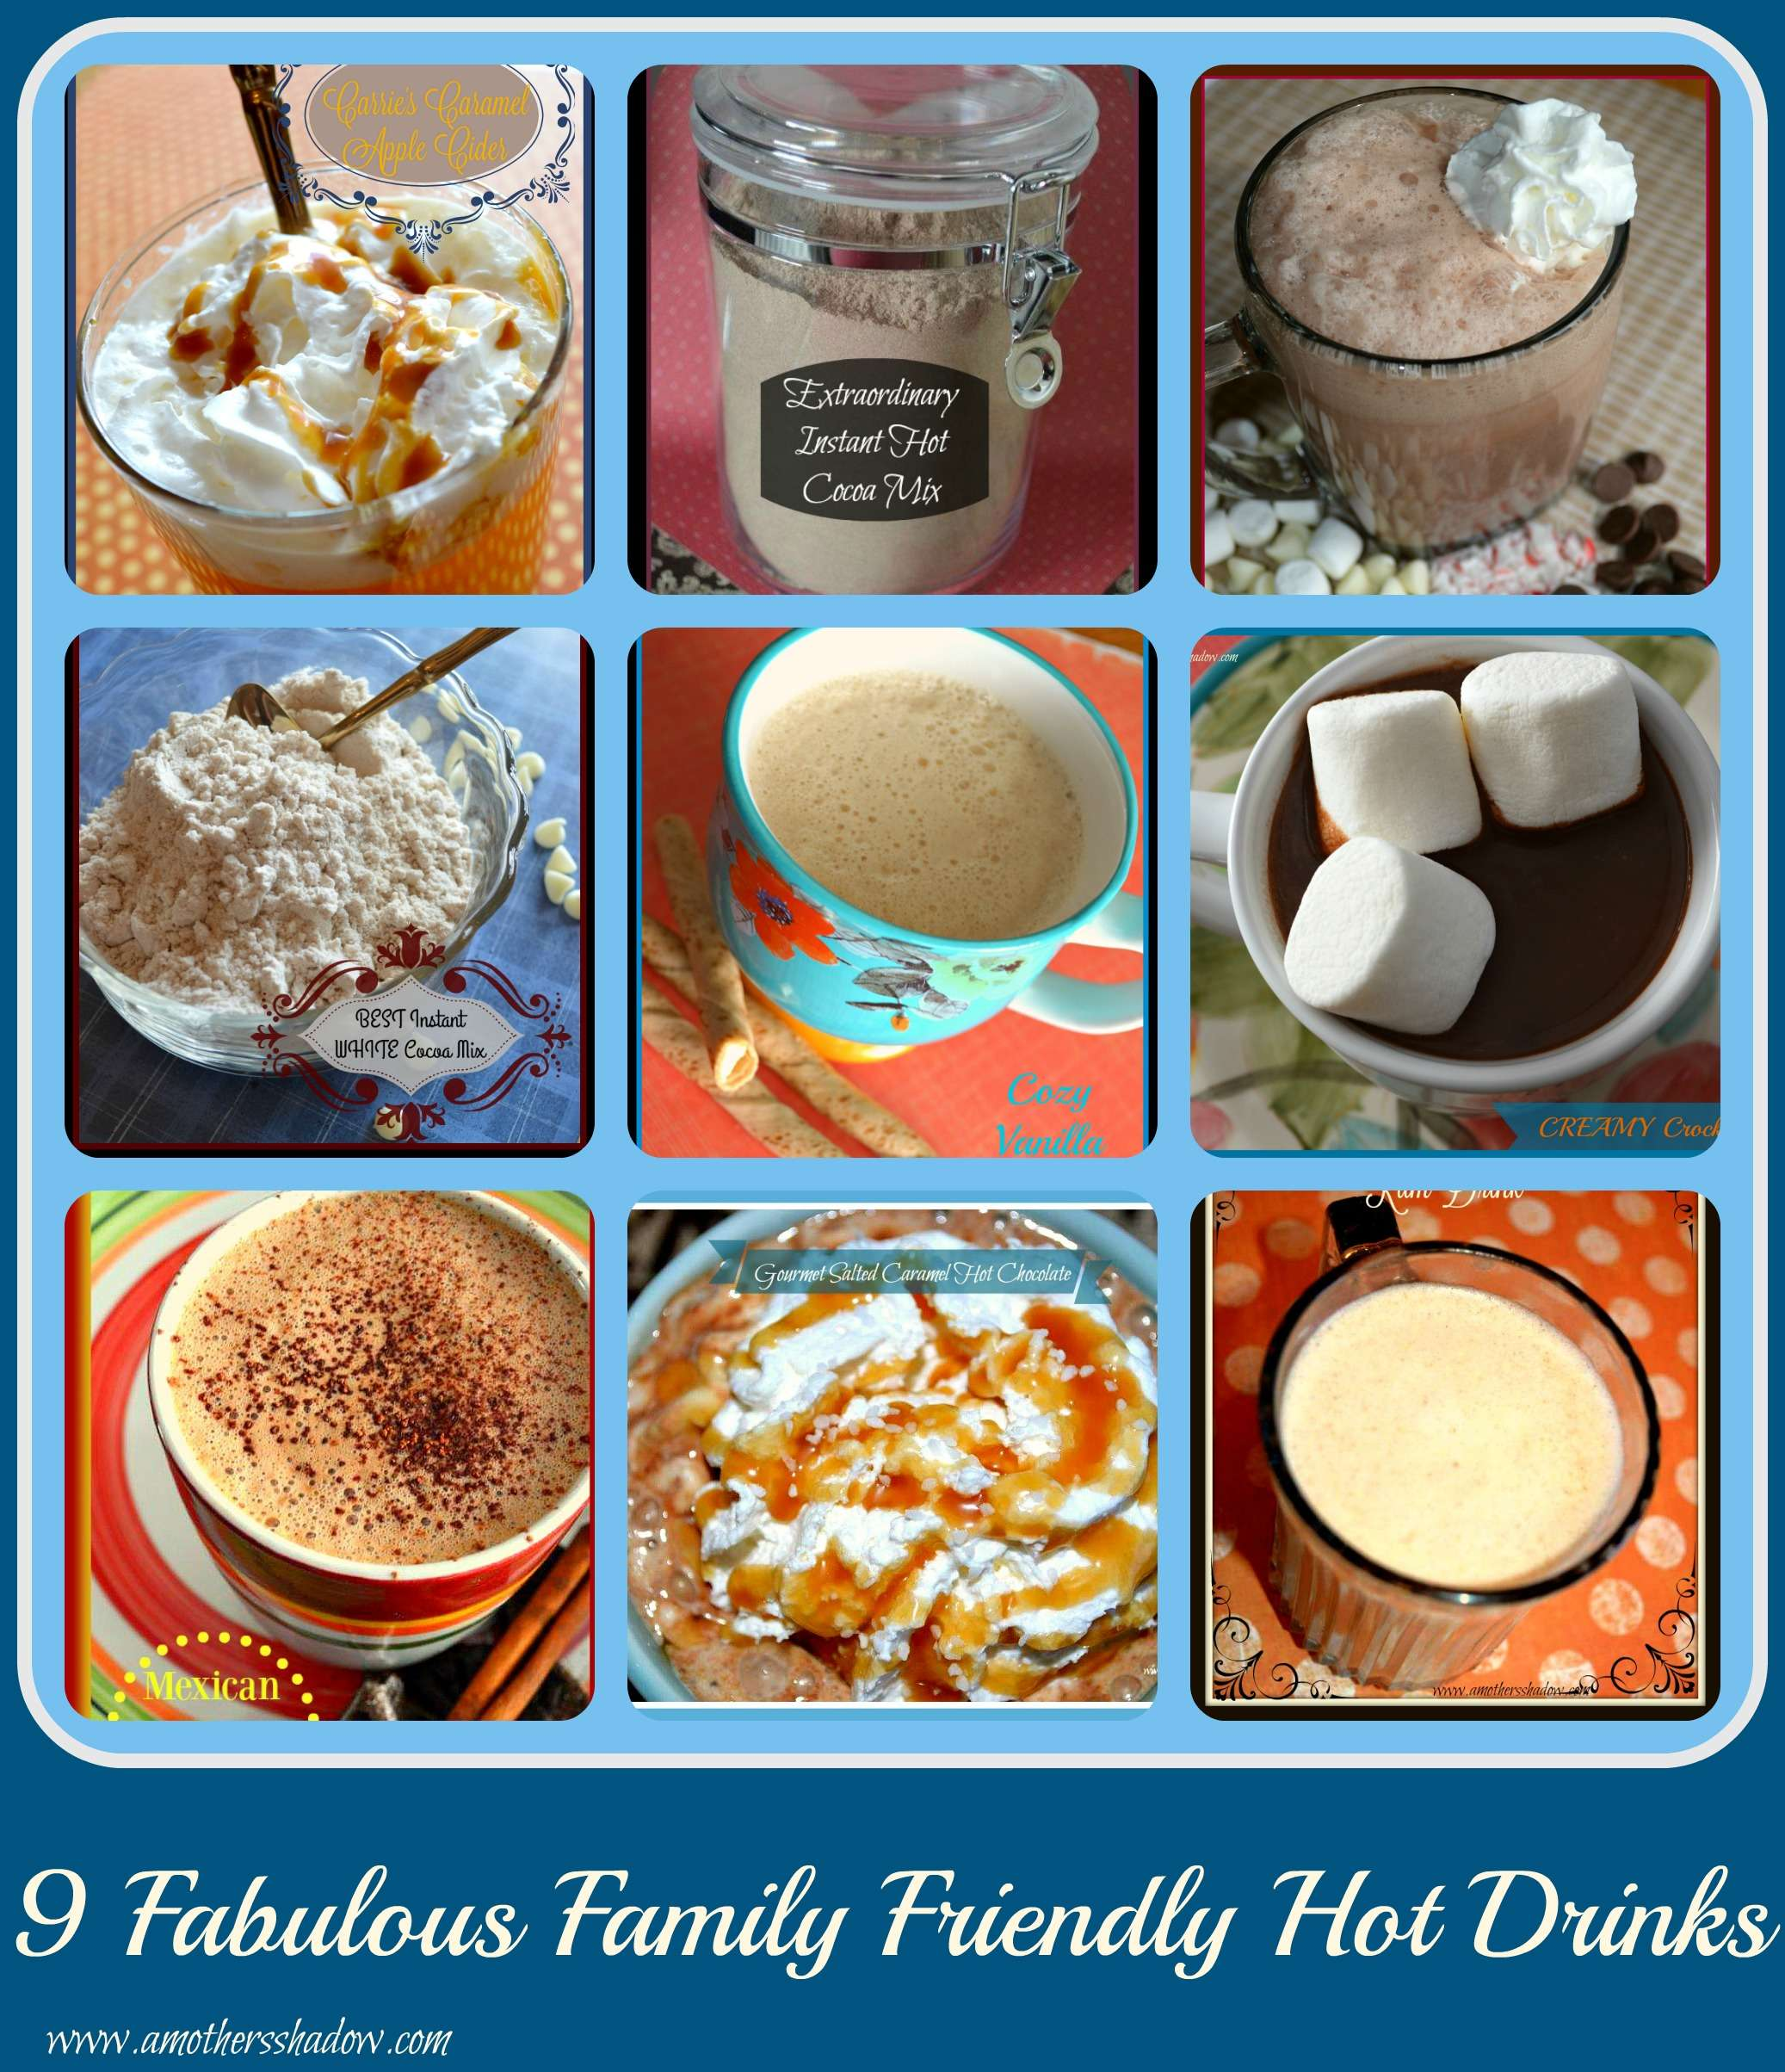 BEST Non Alcoholic Family-Friendly Hot Drinks